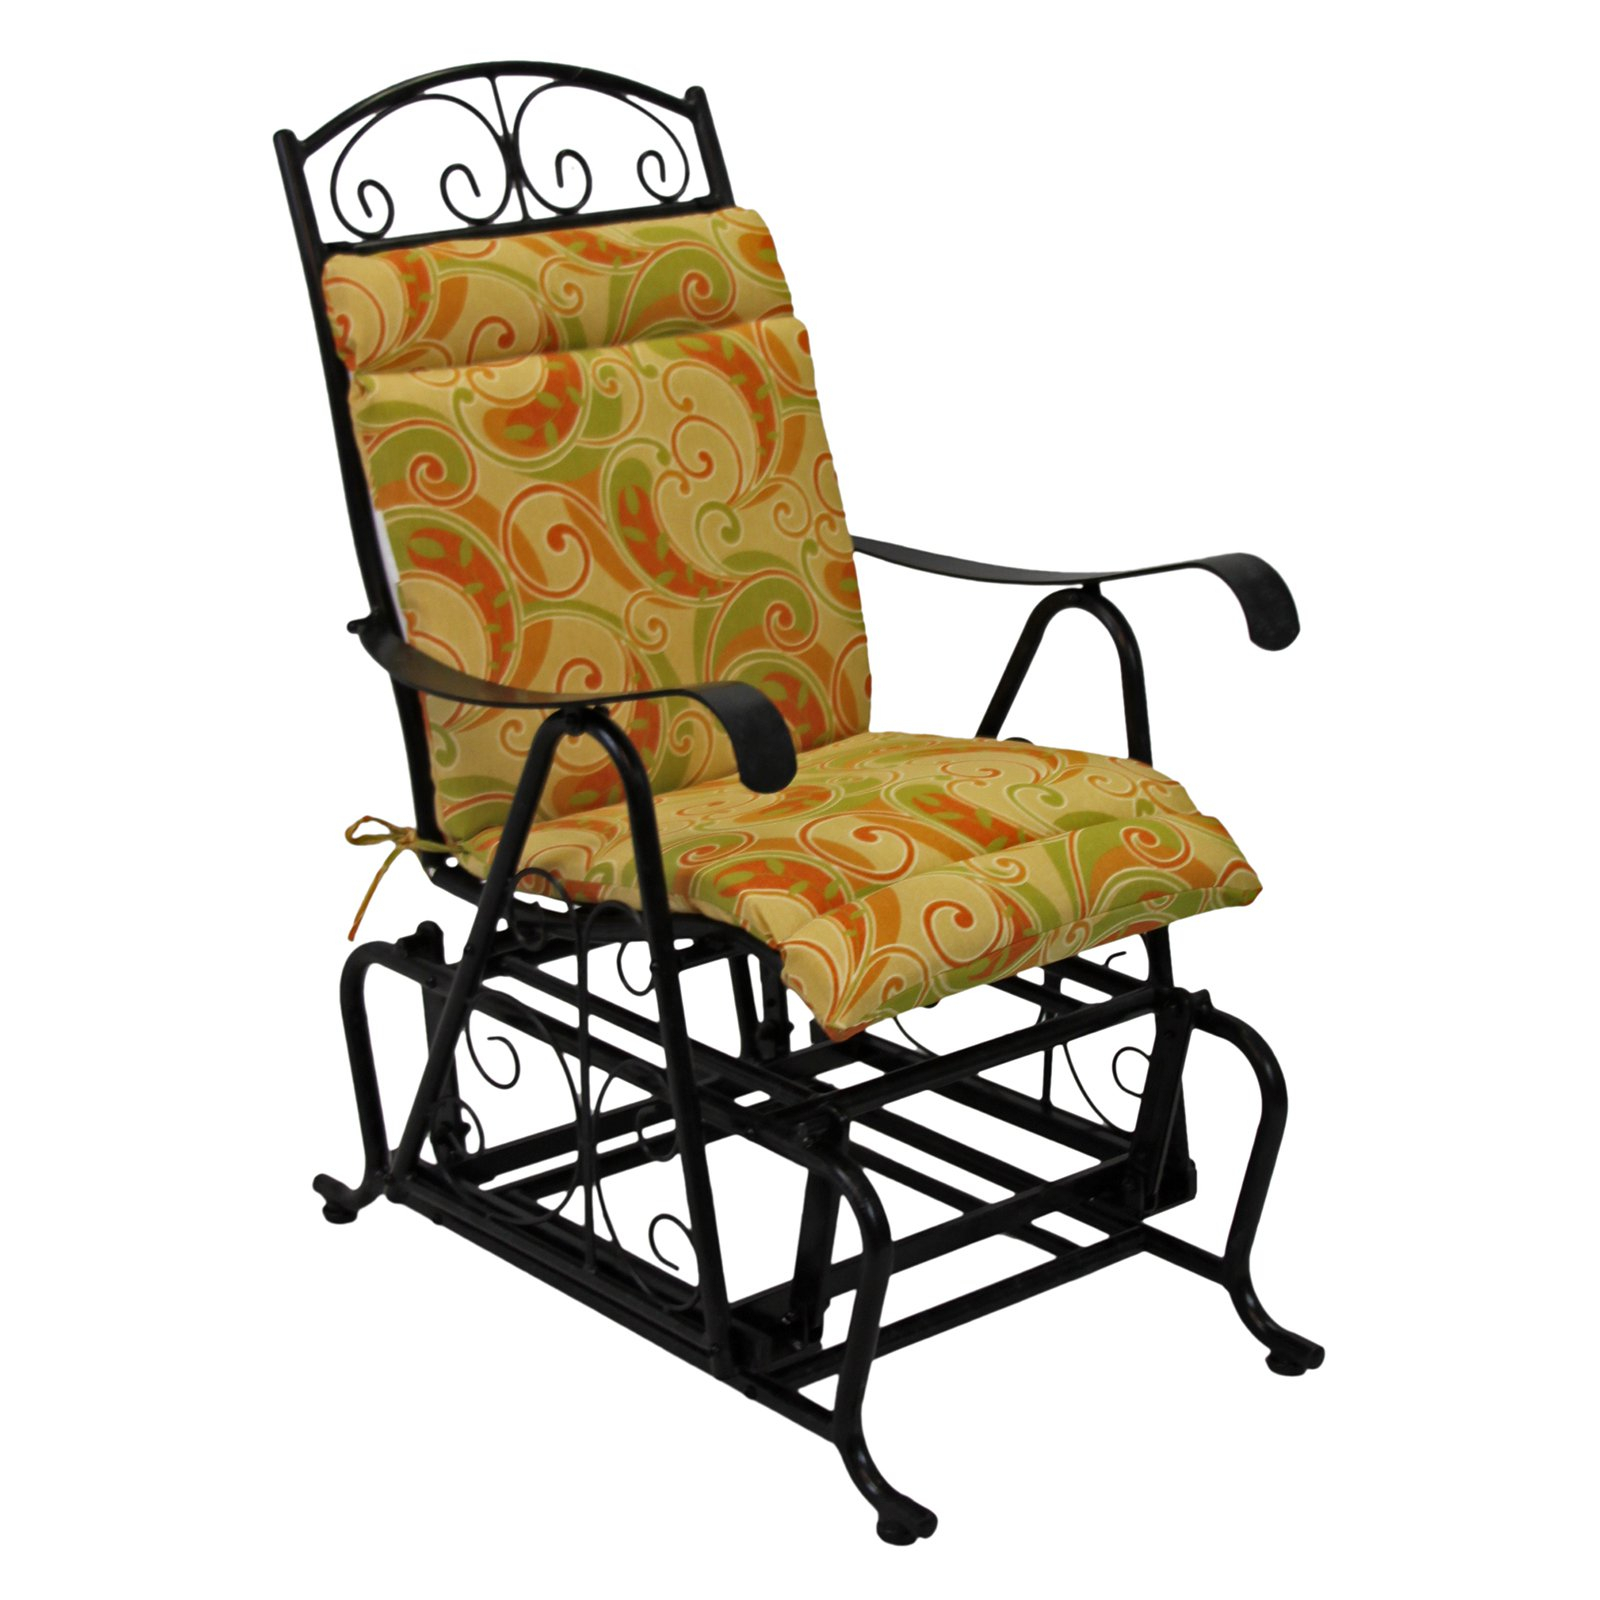 Blazing Needles Outdoor Glider Chair Hinged Seat & Back Intended For Glider Benches With Cushion (Image 4 of 25)